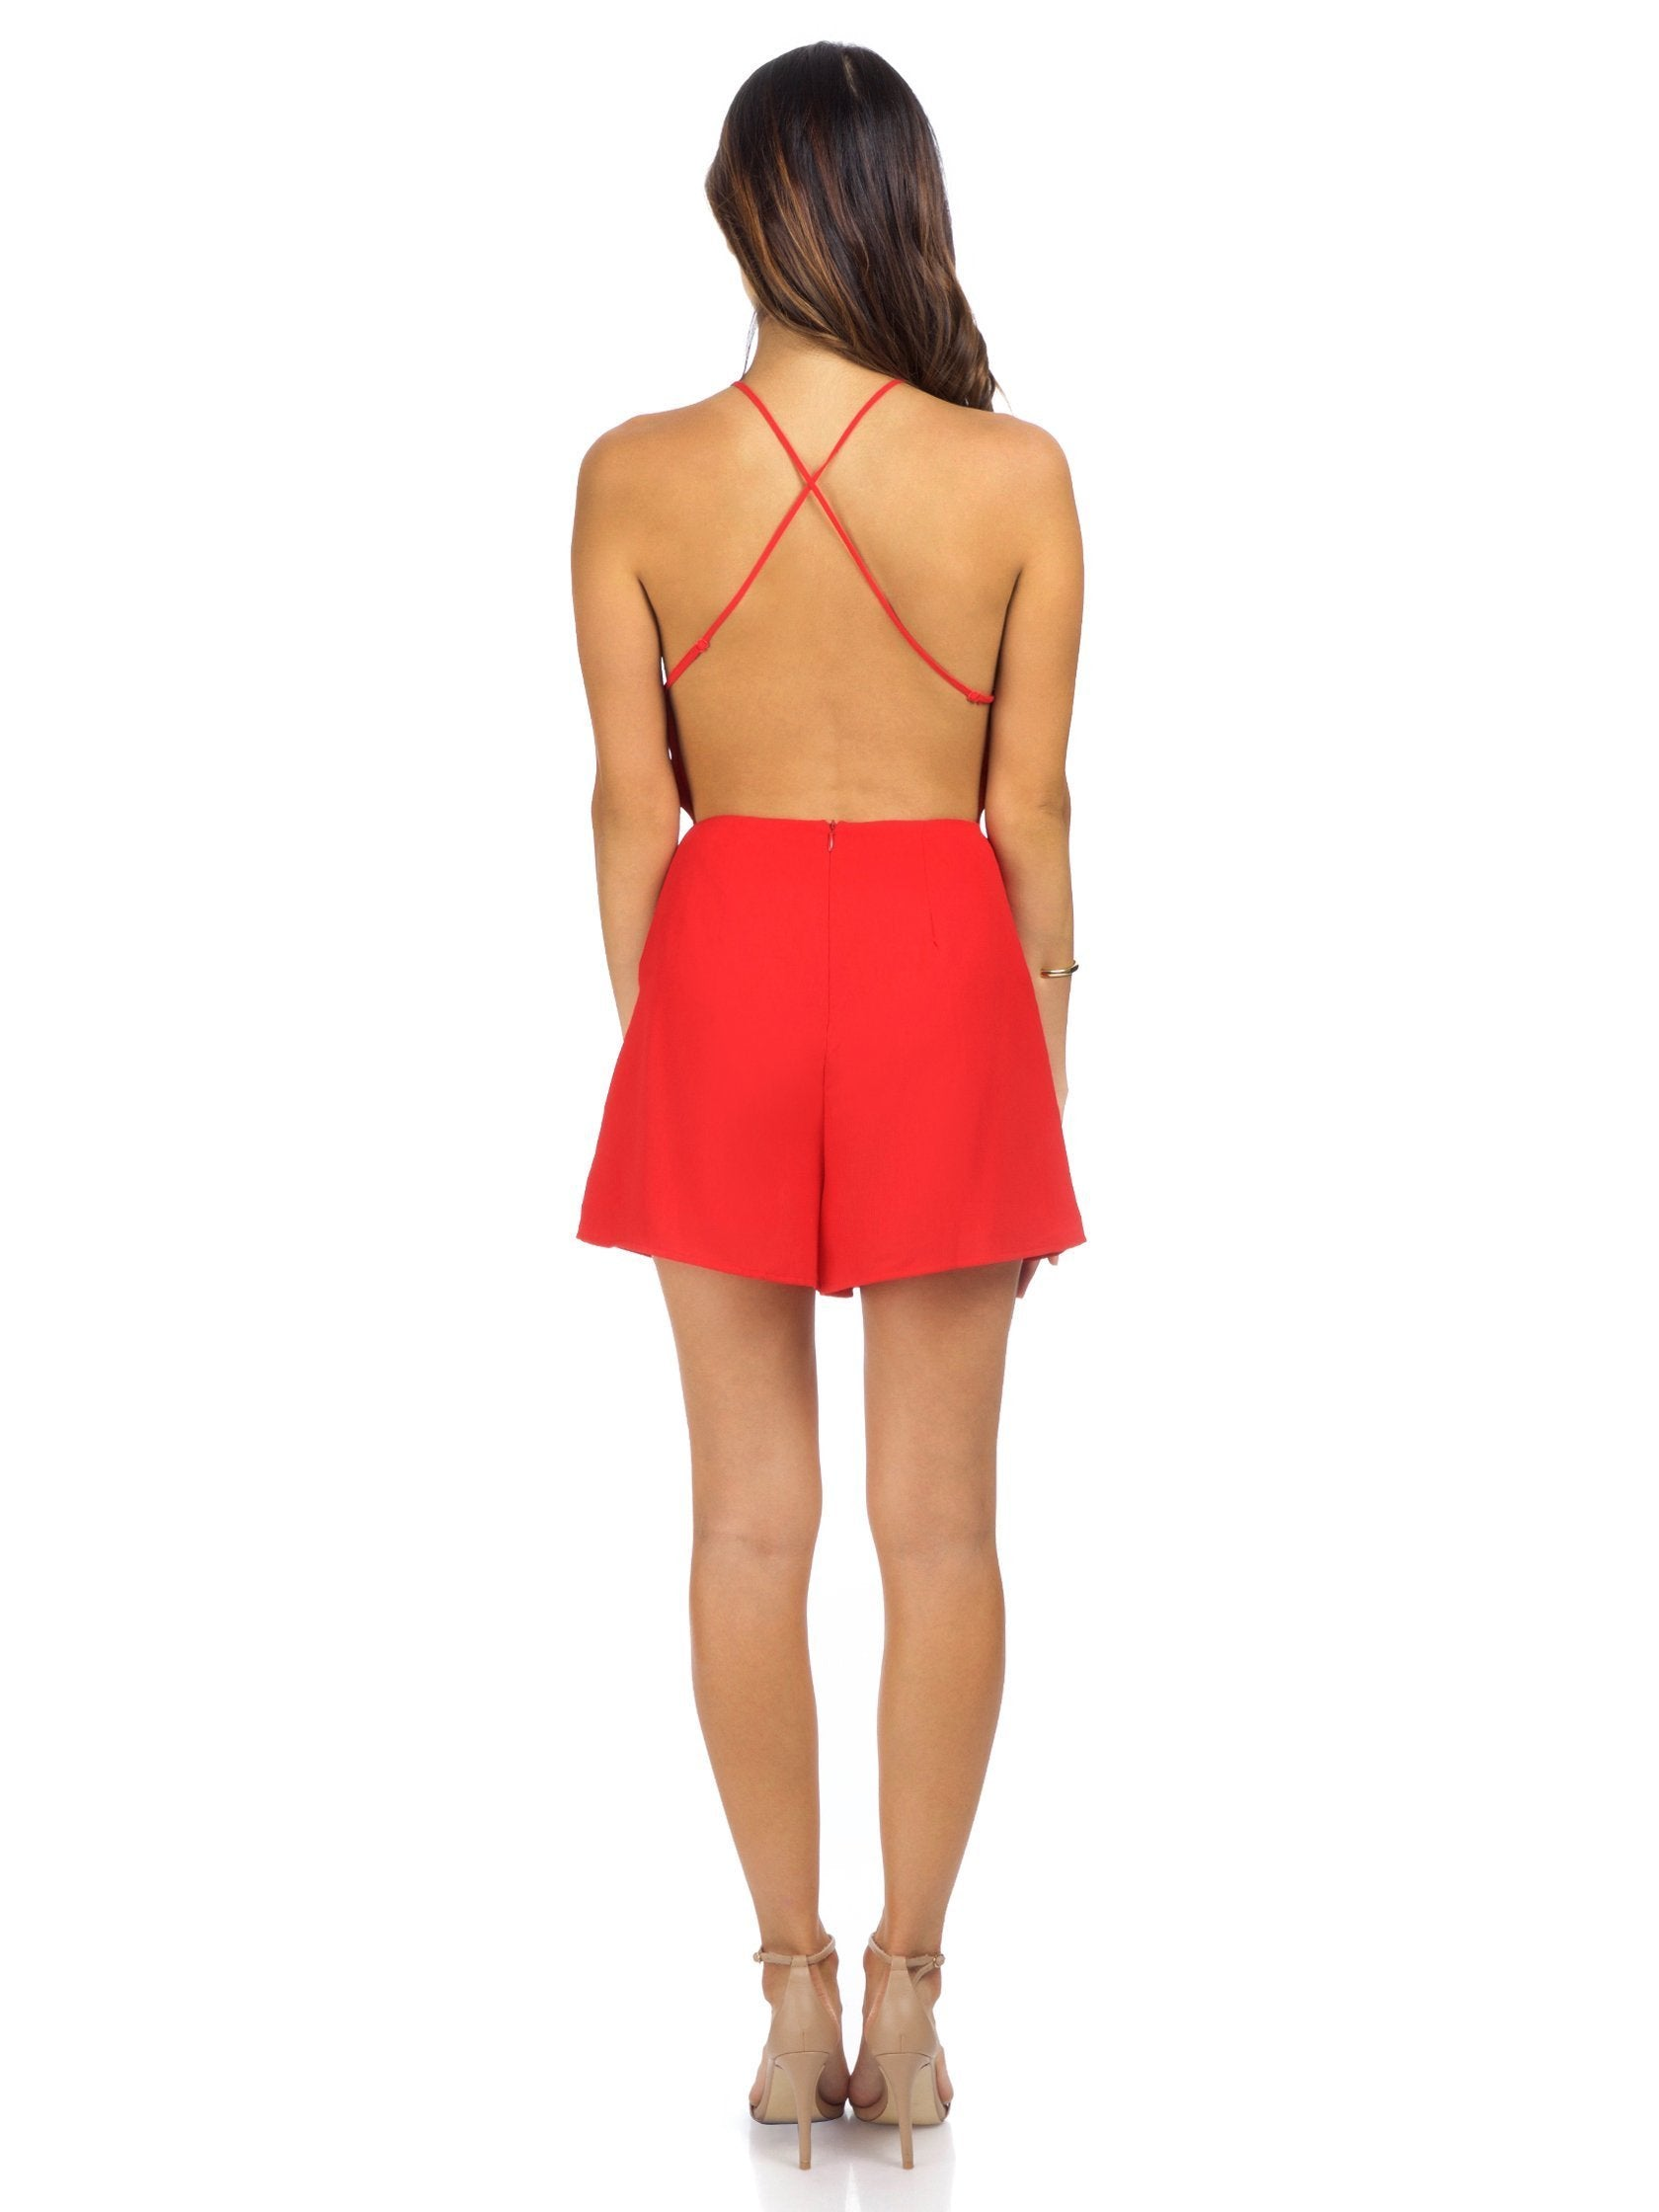 Women wearing a romper rental from Lush called Wild About You Romper